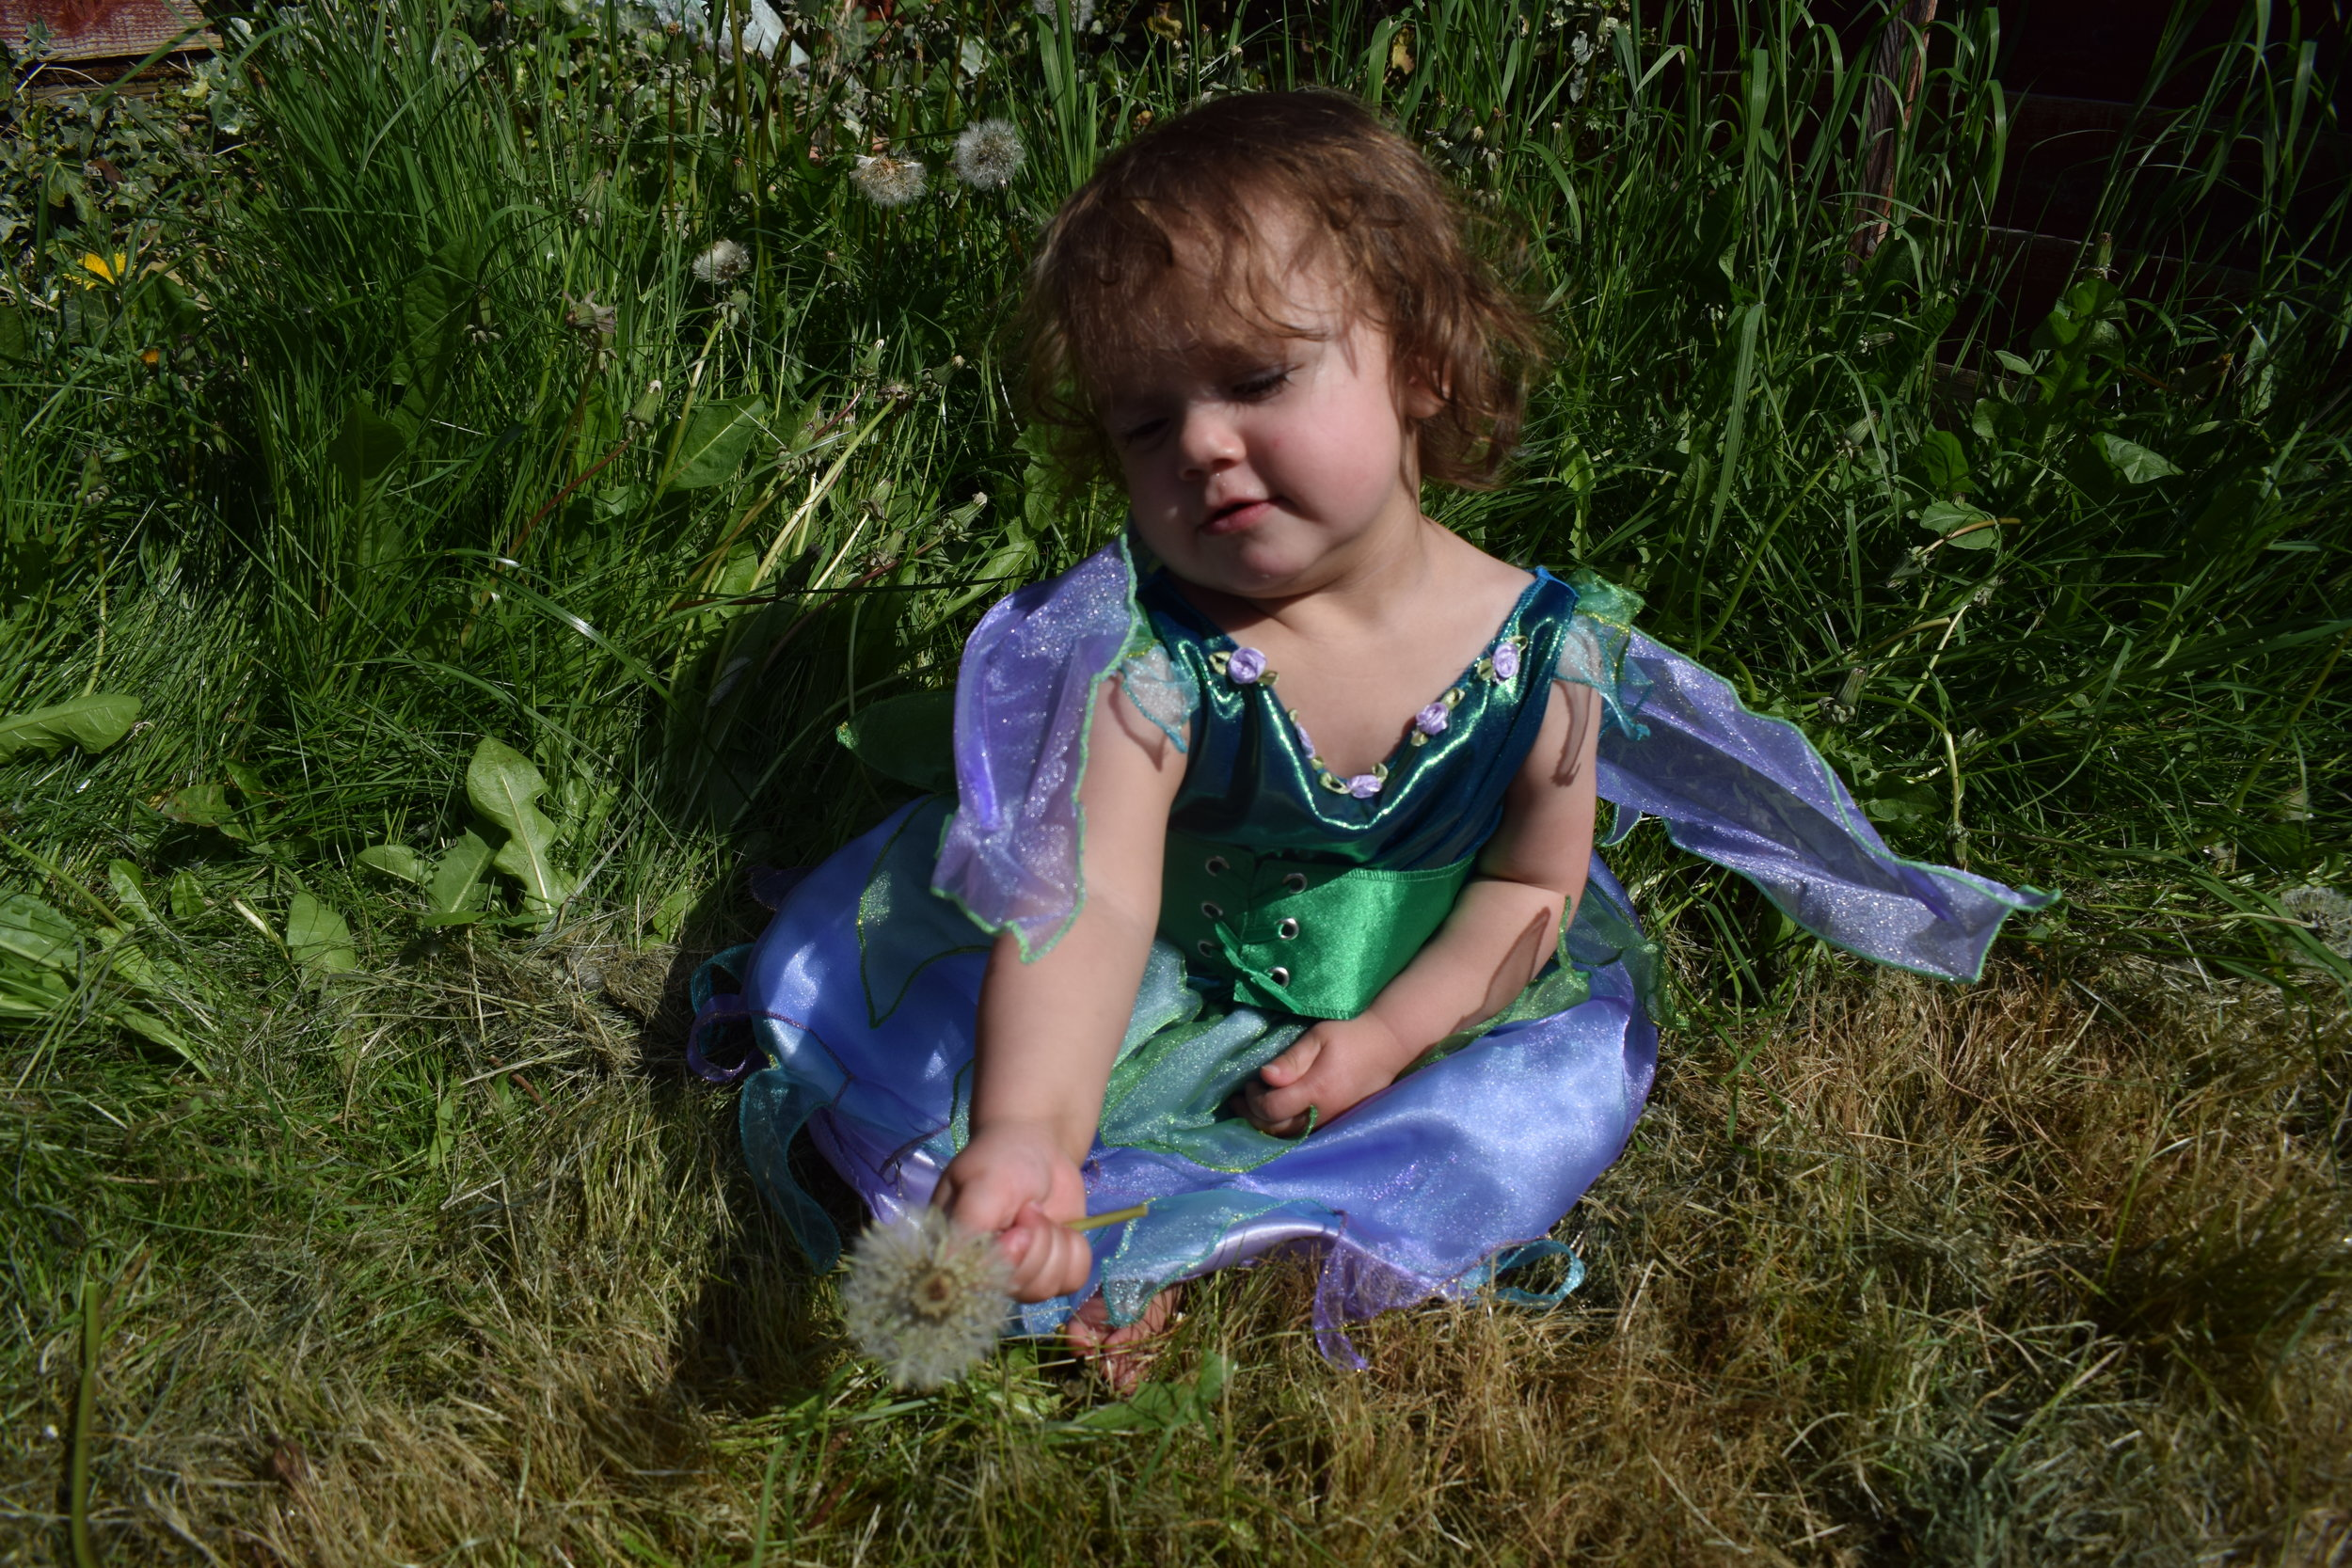 Pickle a little garden fairy in her outfit from Vegaoo